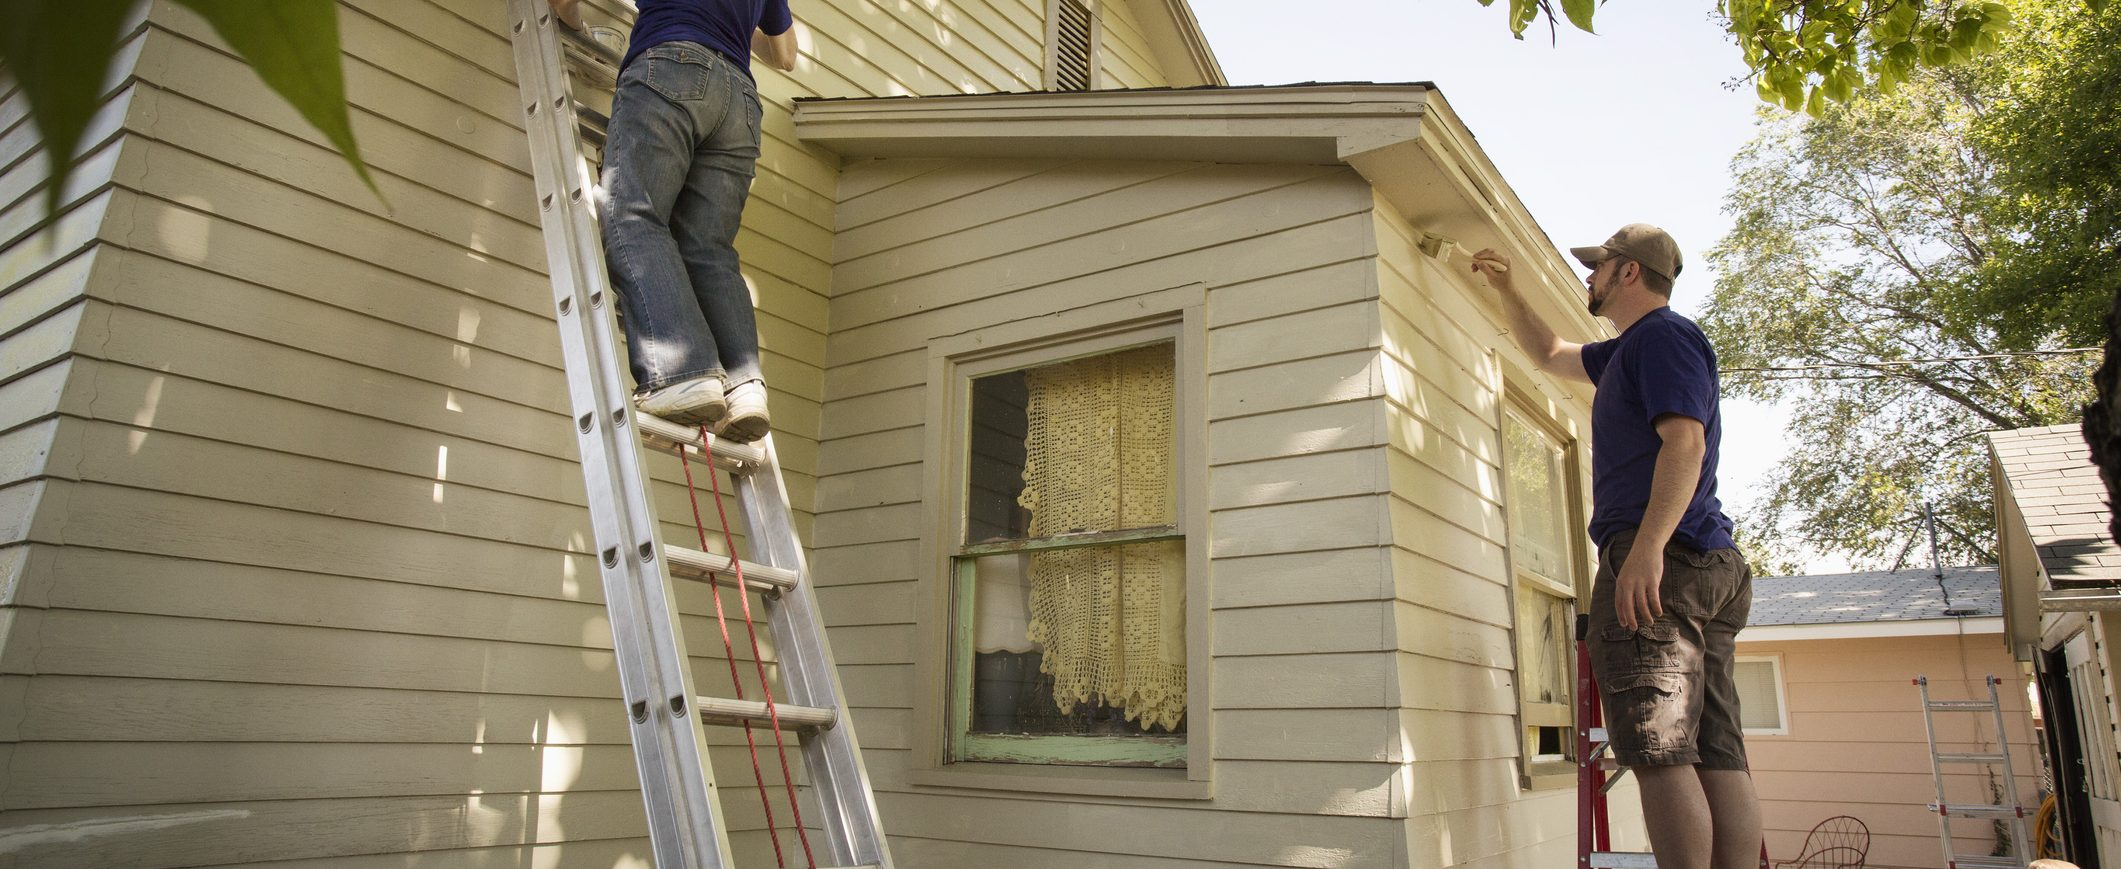 Costly home repairs are high on the list of reasons you need an emergency fund.